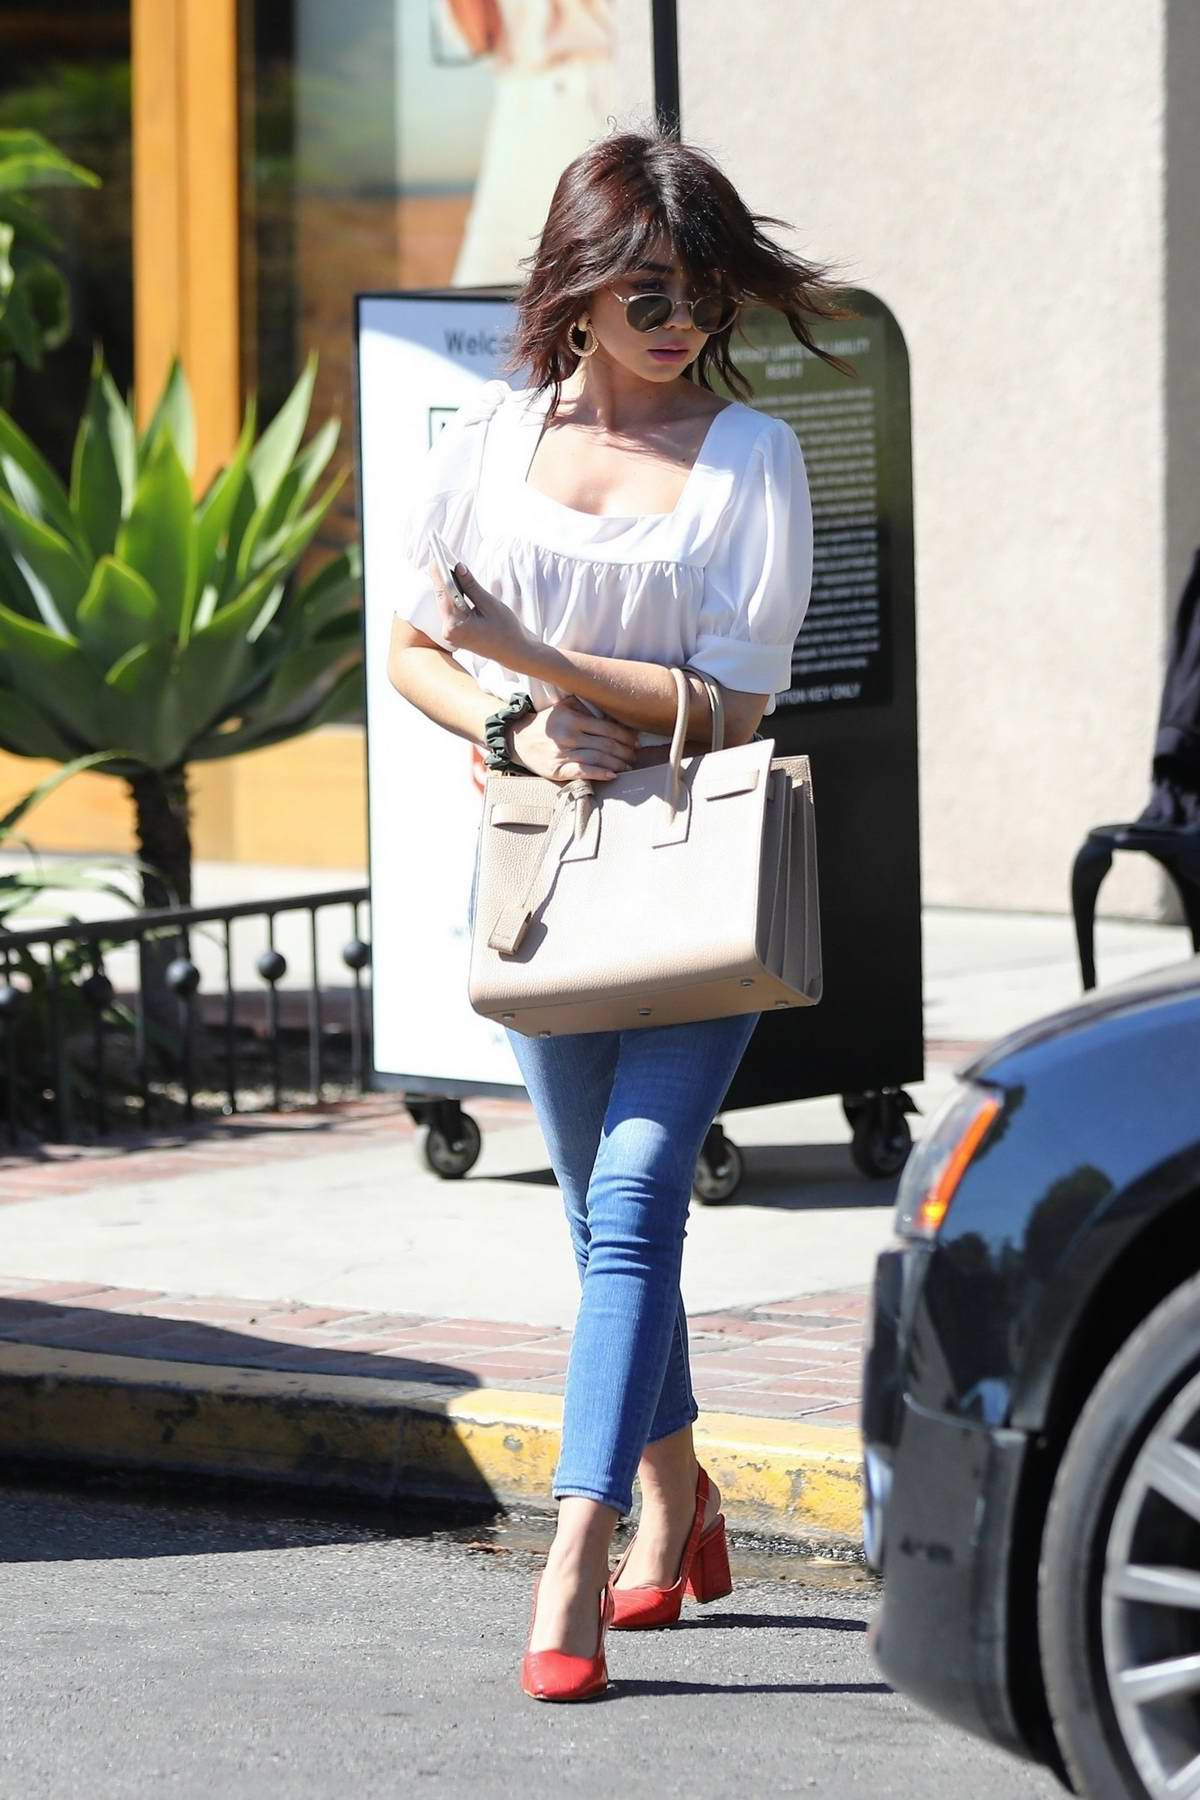 Sarah Hyland sports her new hairdo as she leaves Nine Zero One salon in Los Angeles